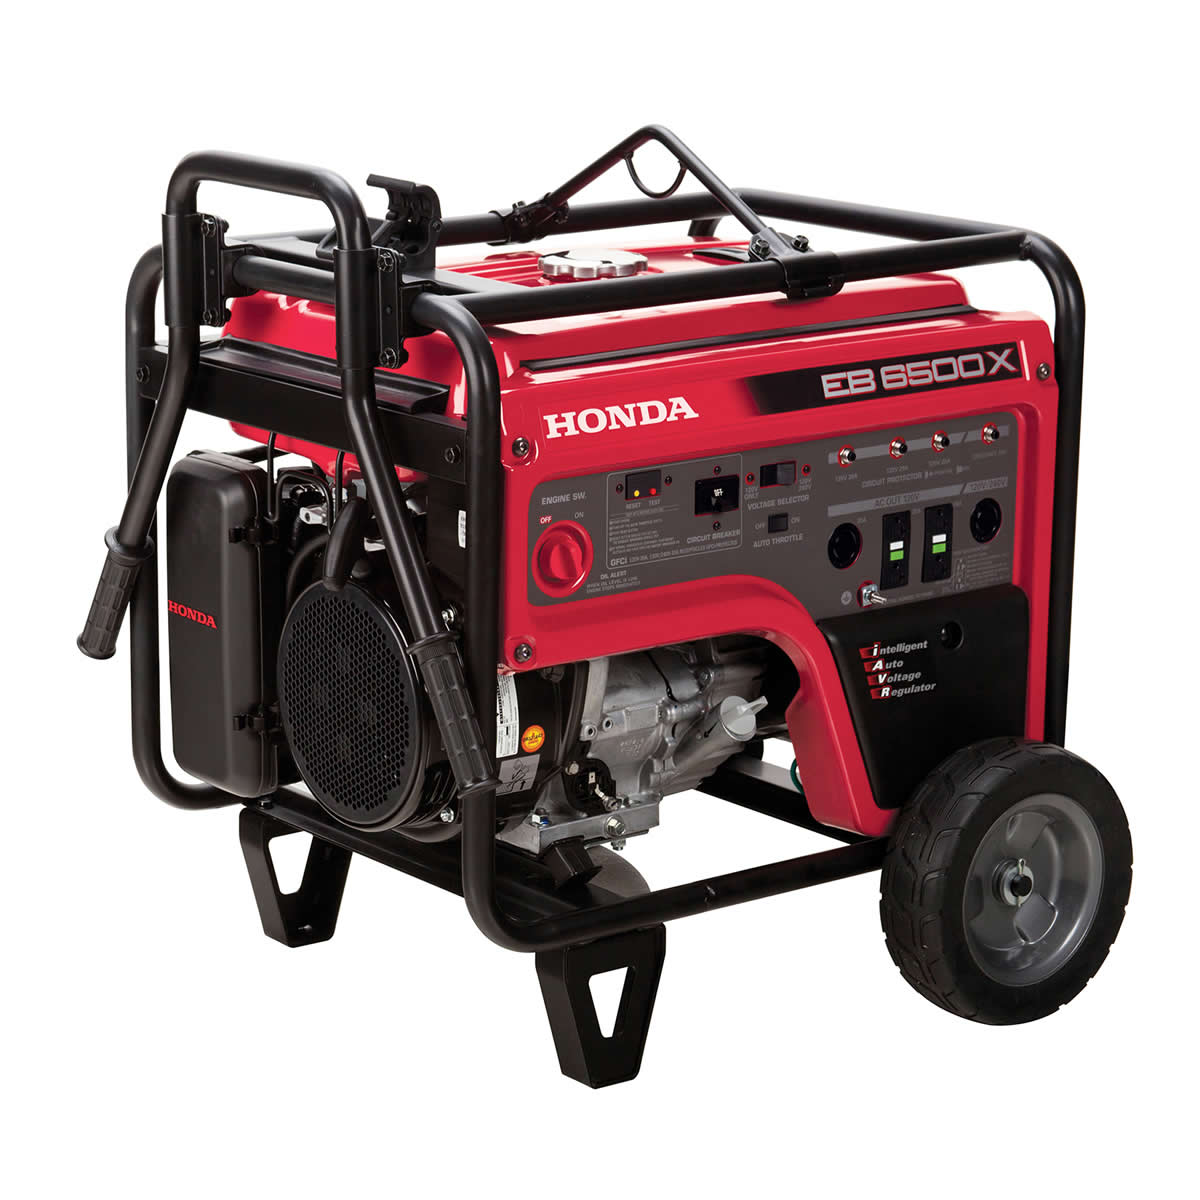 Honda 6500W Industrial/Commercial Generator - 5500W Rated, Recoil Start w/